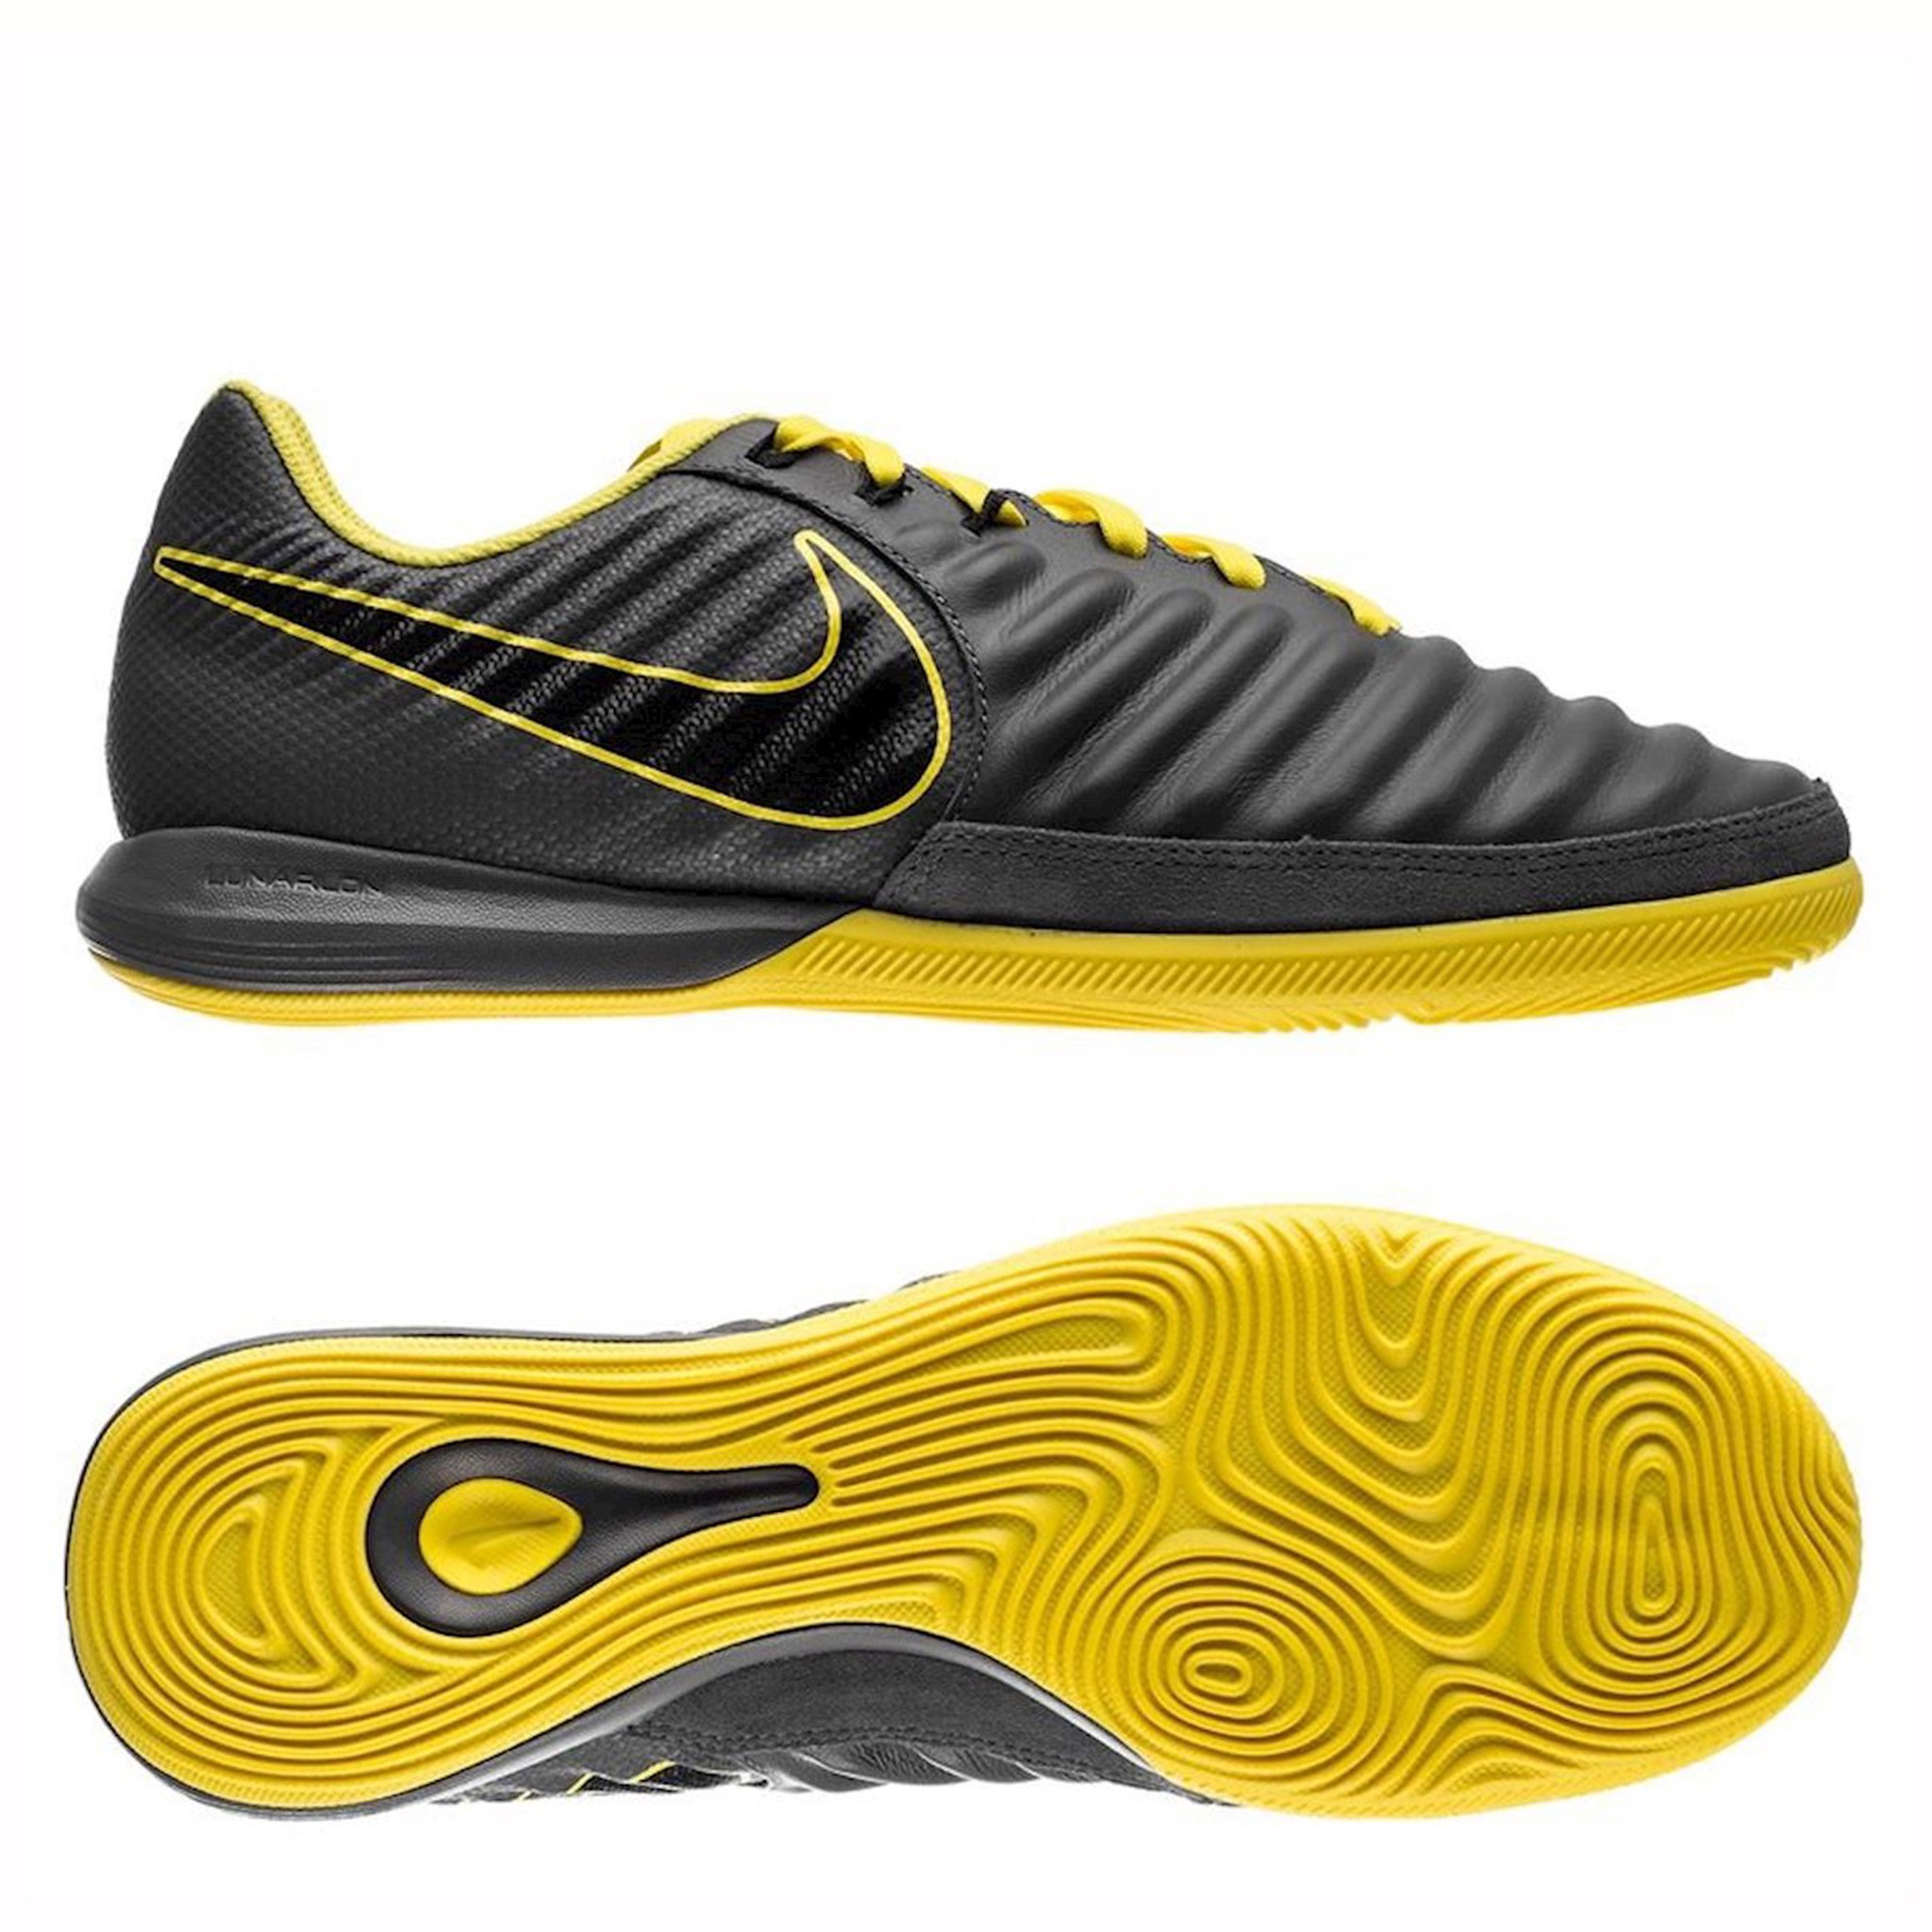 Nike Lunar Legend 7 Pro IC Game Over - Dark Grey/Yellow